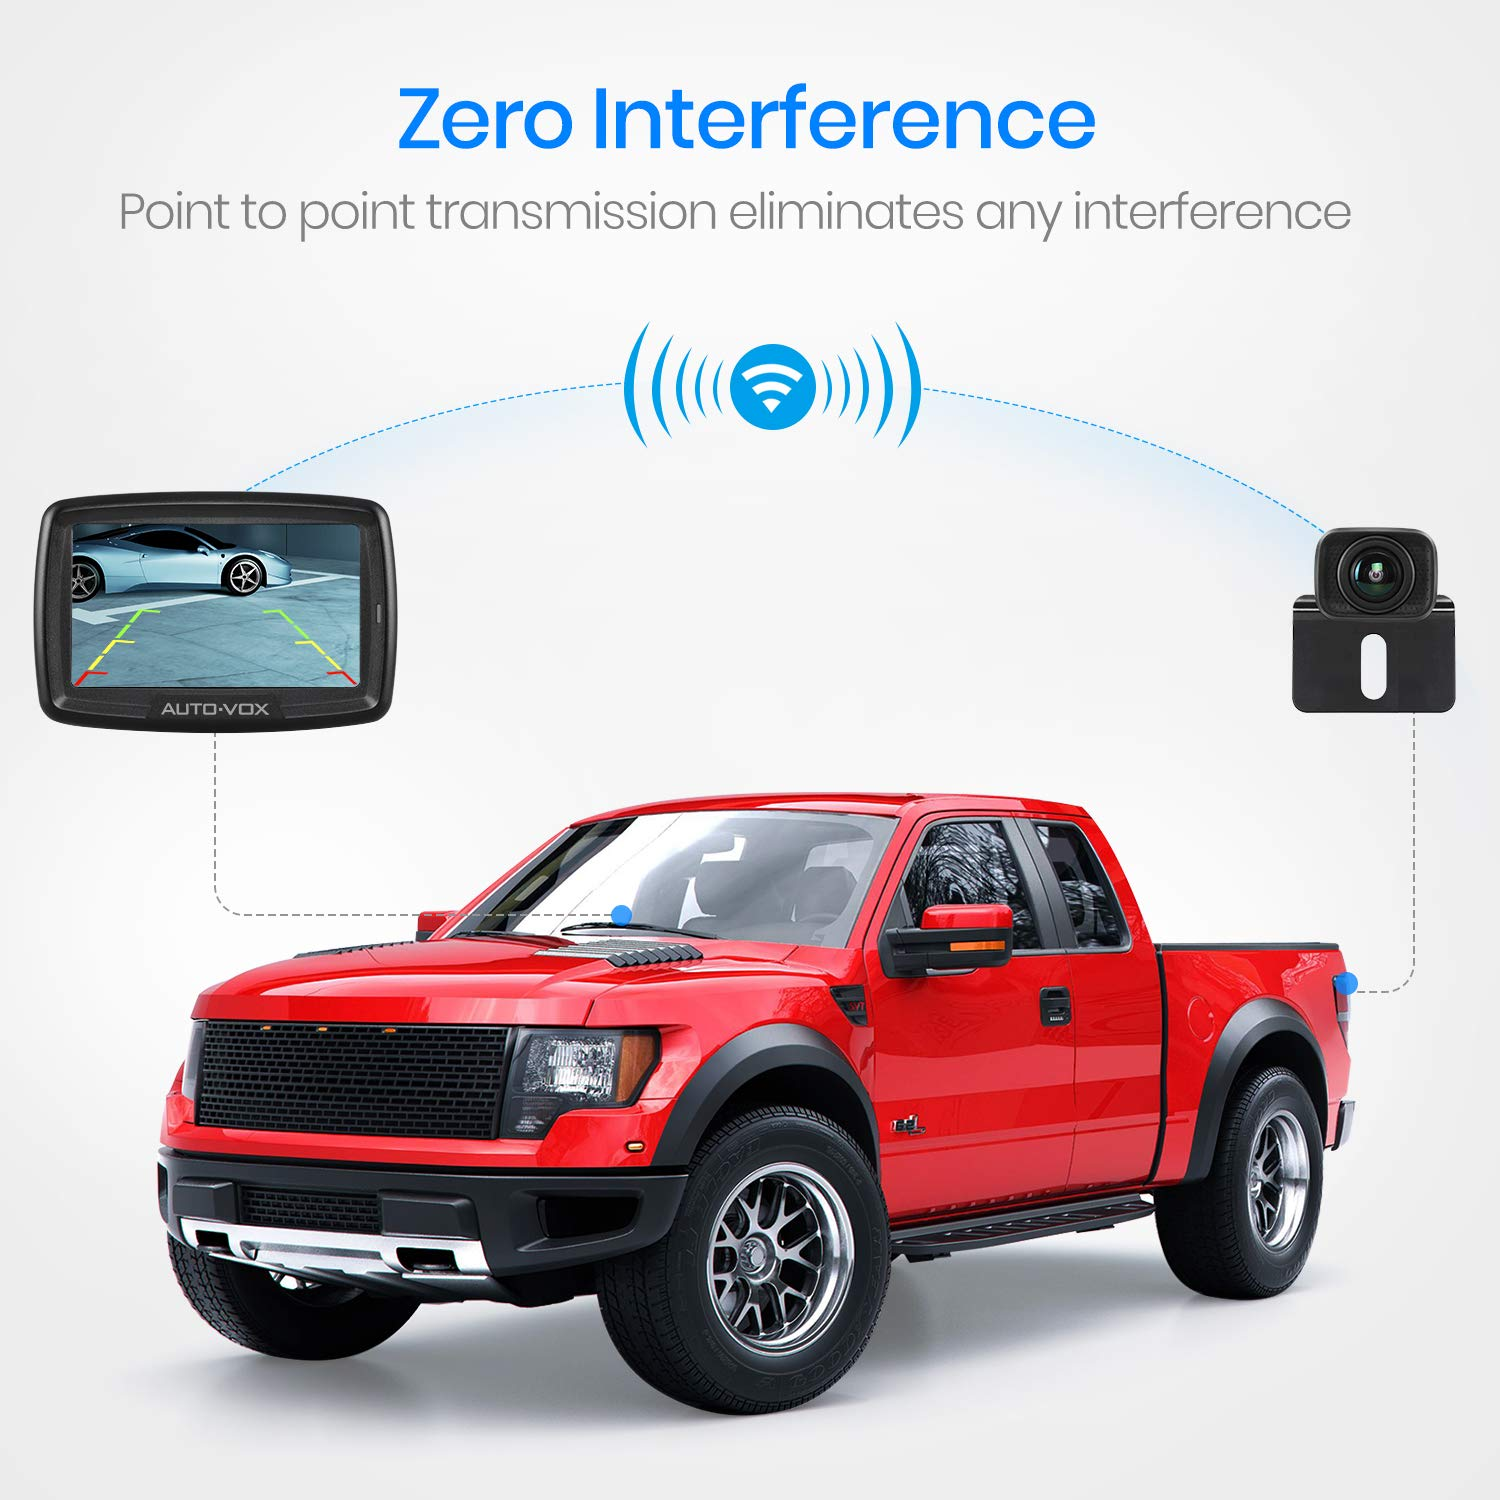 Auto Vox Digital Wireless Backup Camera Kit Cs 2 Stable Pyle Plcm7200 Schematics Wiring View Signal Rear Monitor And Reversing For Vanstruckscamping Carsrvs Car